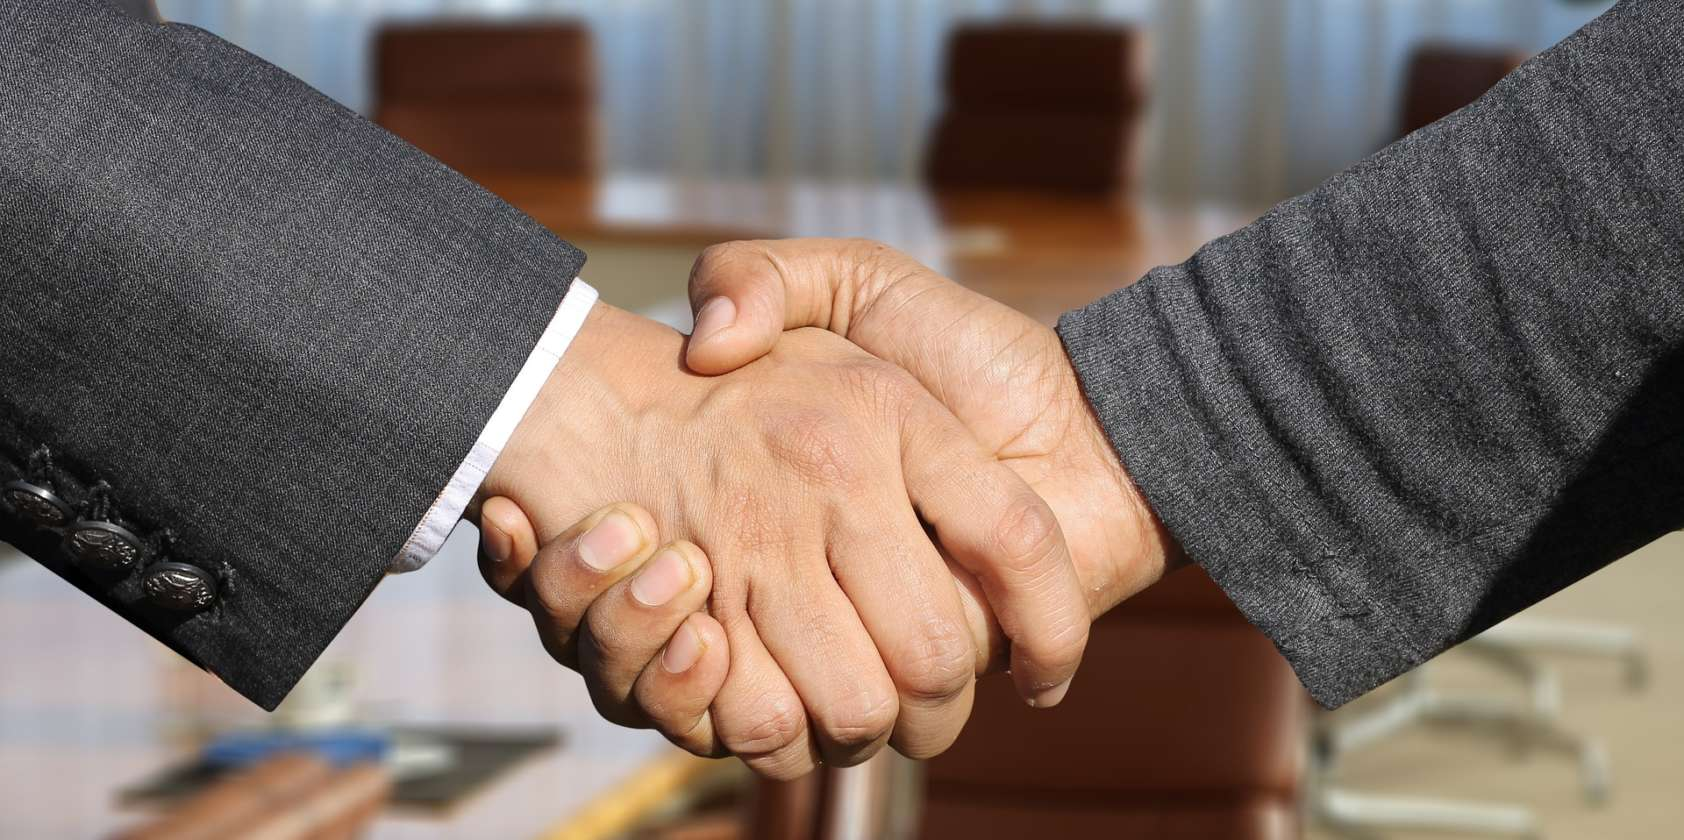 Marketing Vendor Contract Negotiations